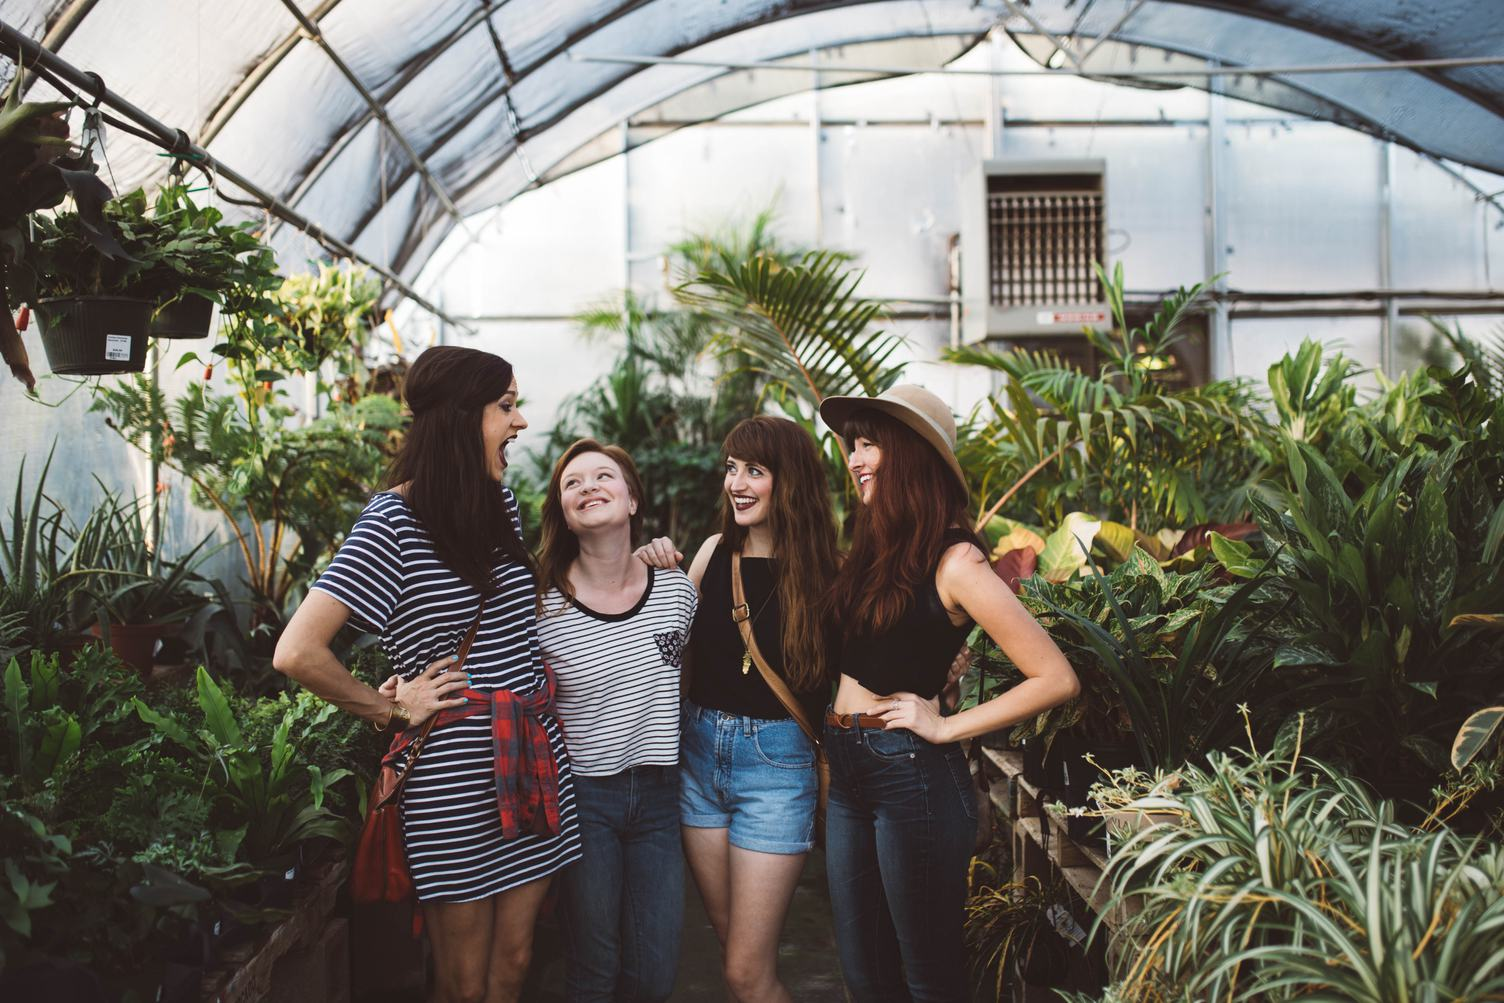 Group of Young Girls Laughing in a Greenhouse